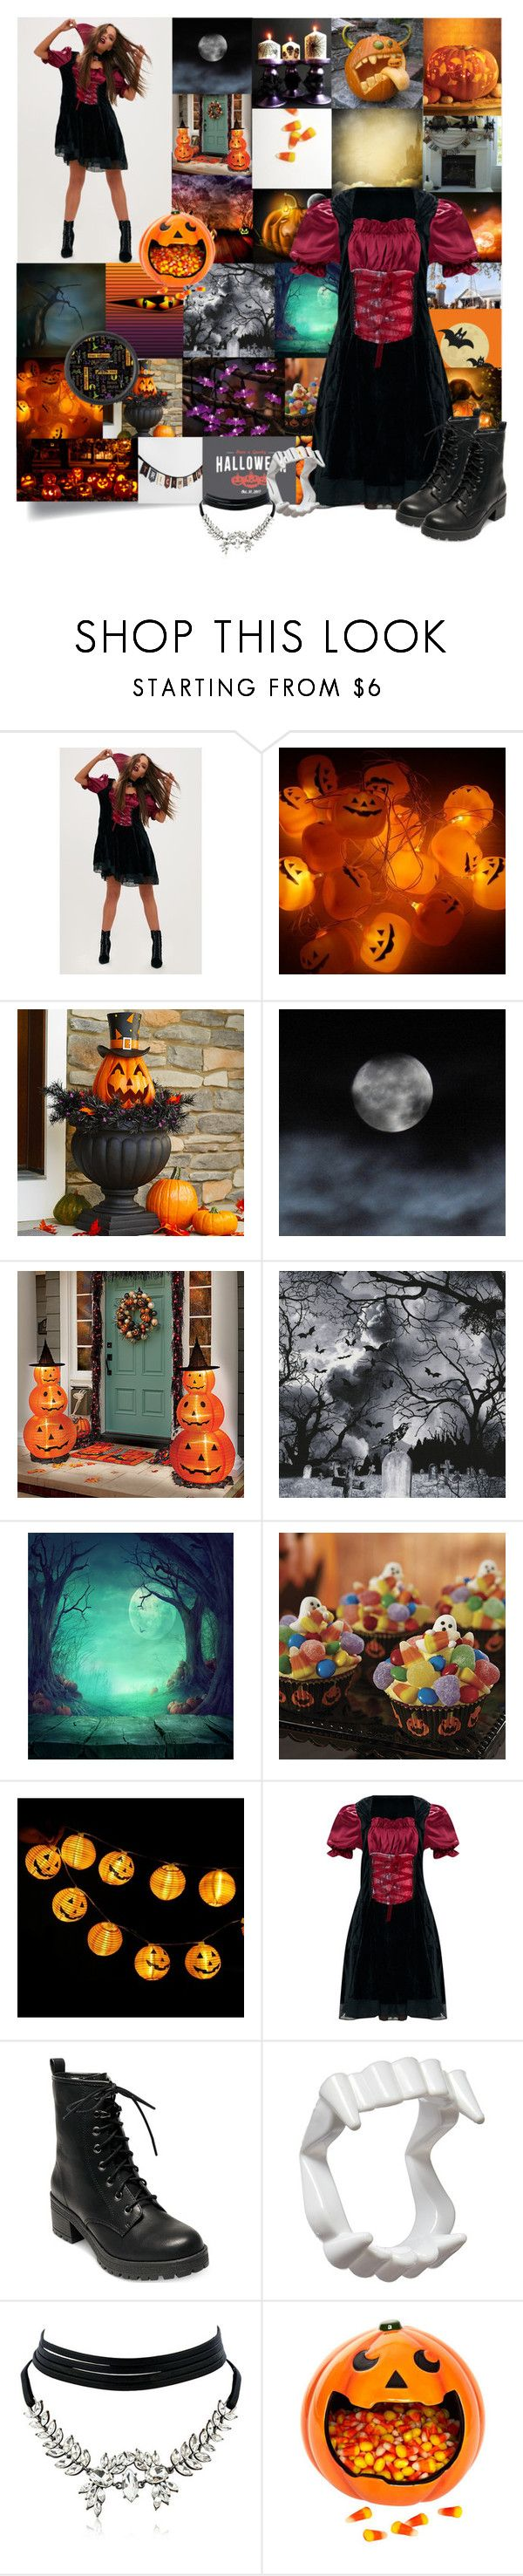 best 25 vampire pumpkin ideas on pinterest frankenstein pumpkin